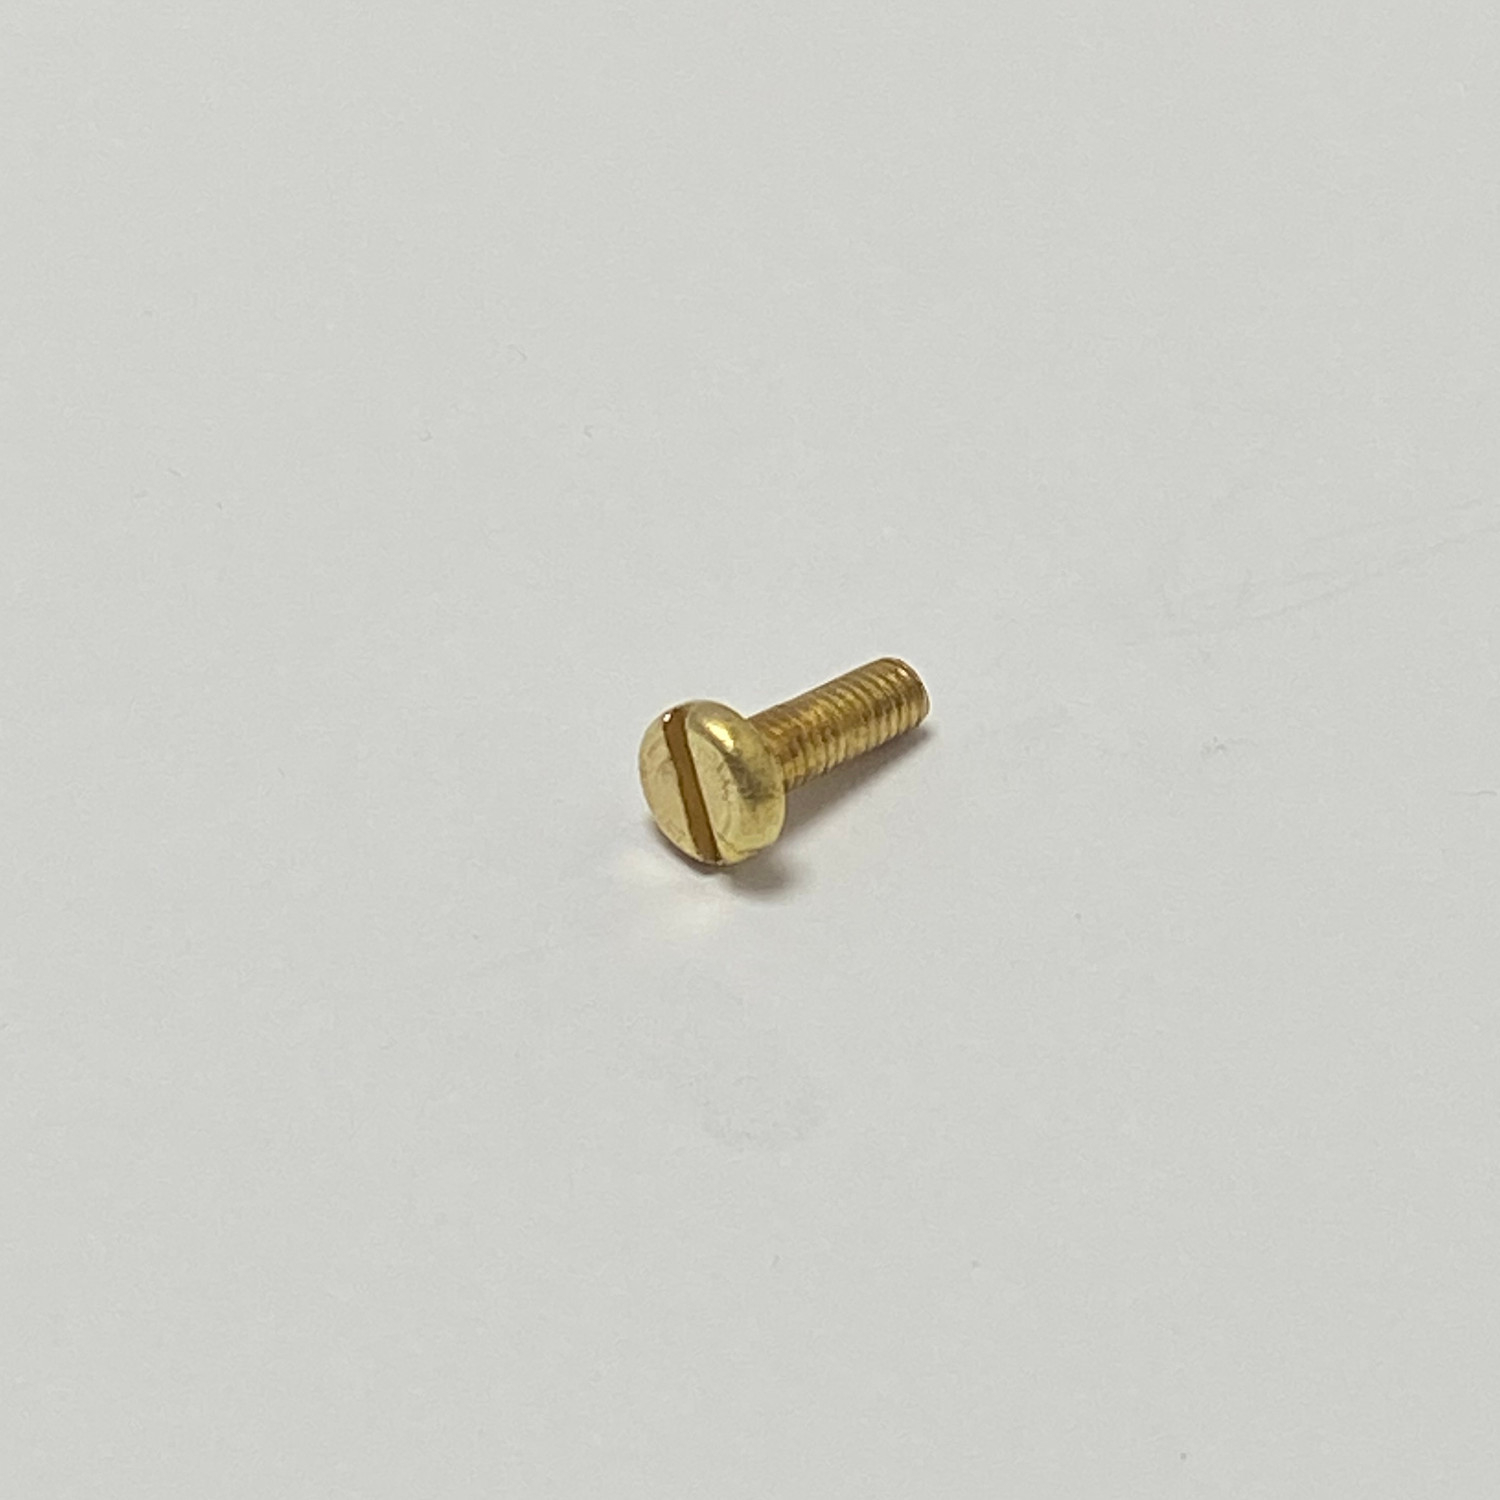 M6 X 25 BRASS SLOTTED CHEESE SCREWS